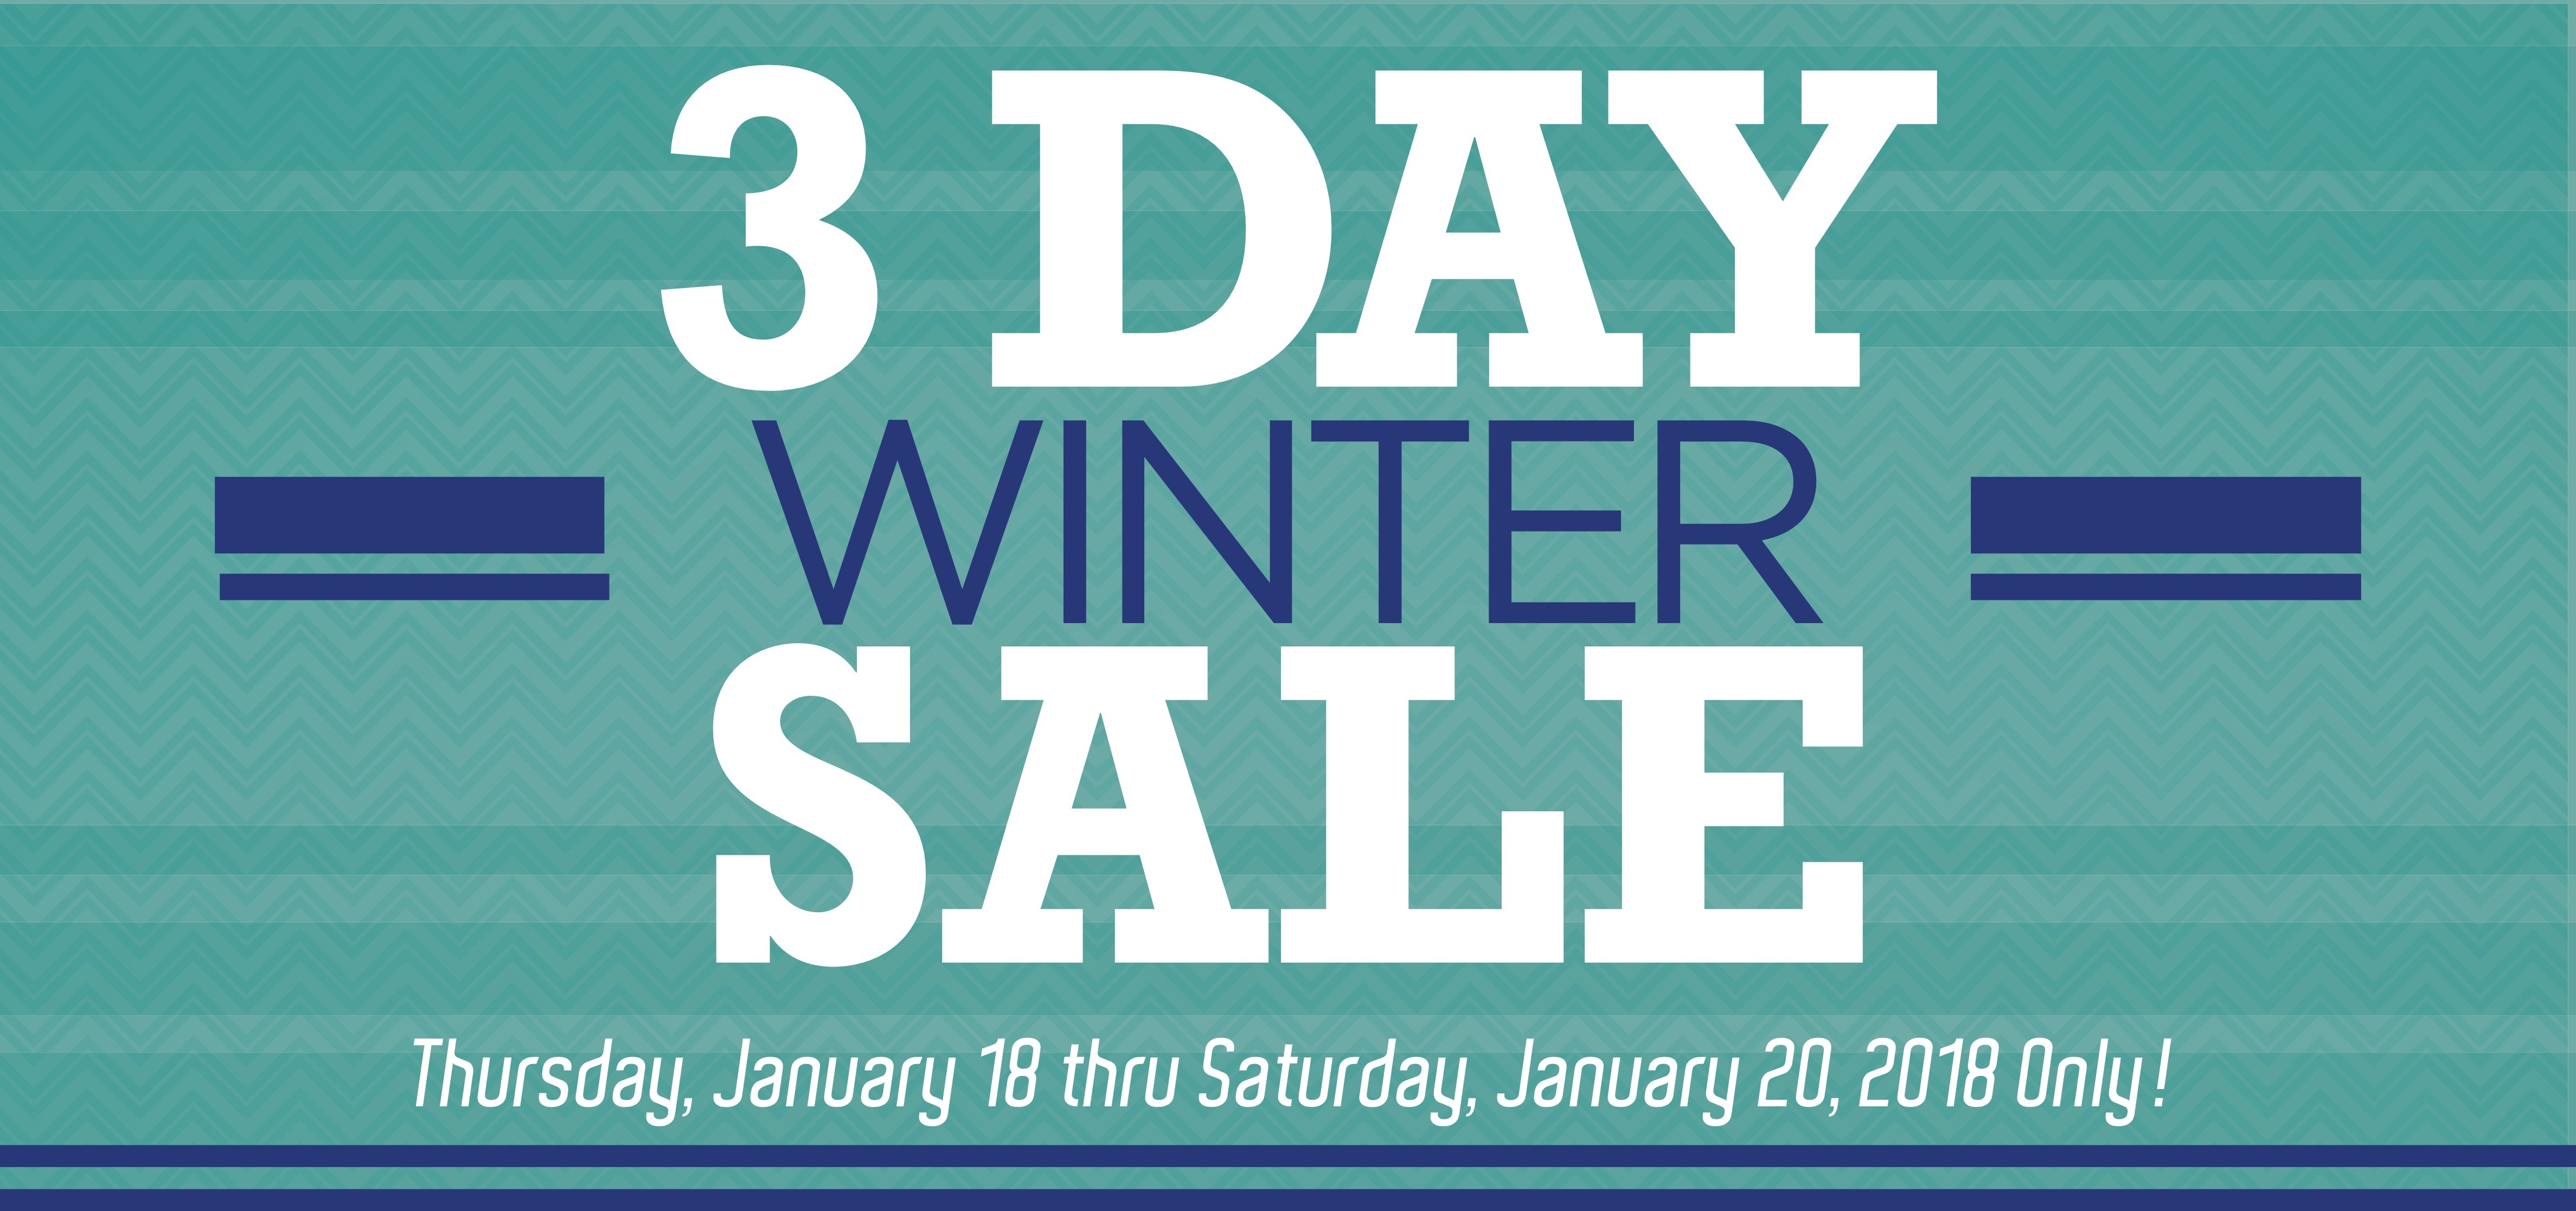 WEBSLIDER_WINTER_SALE-1